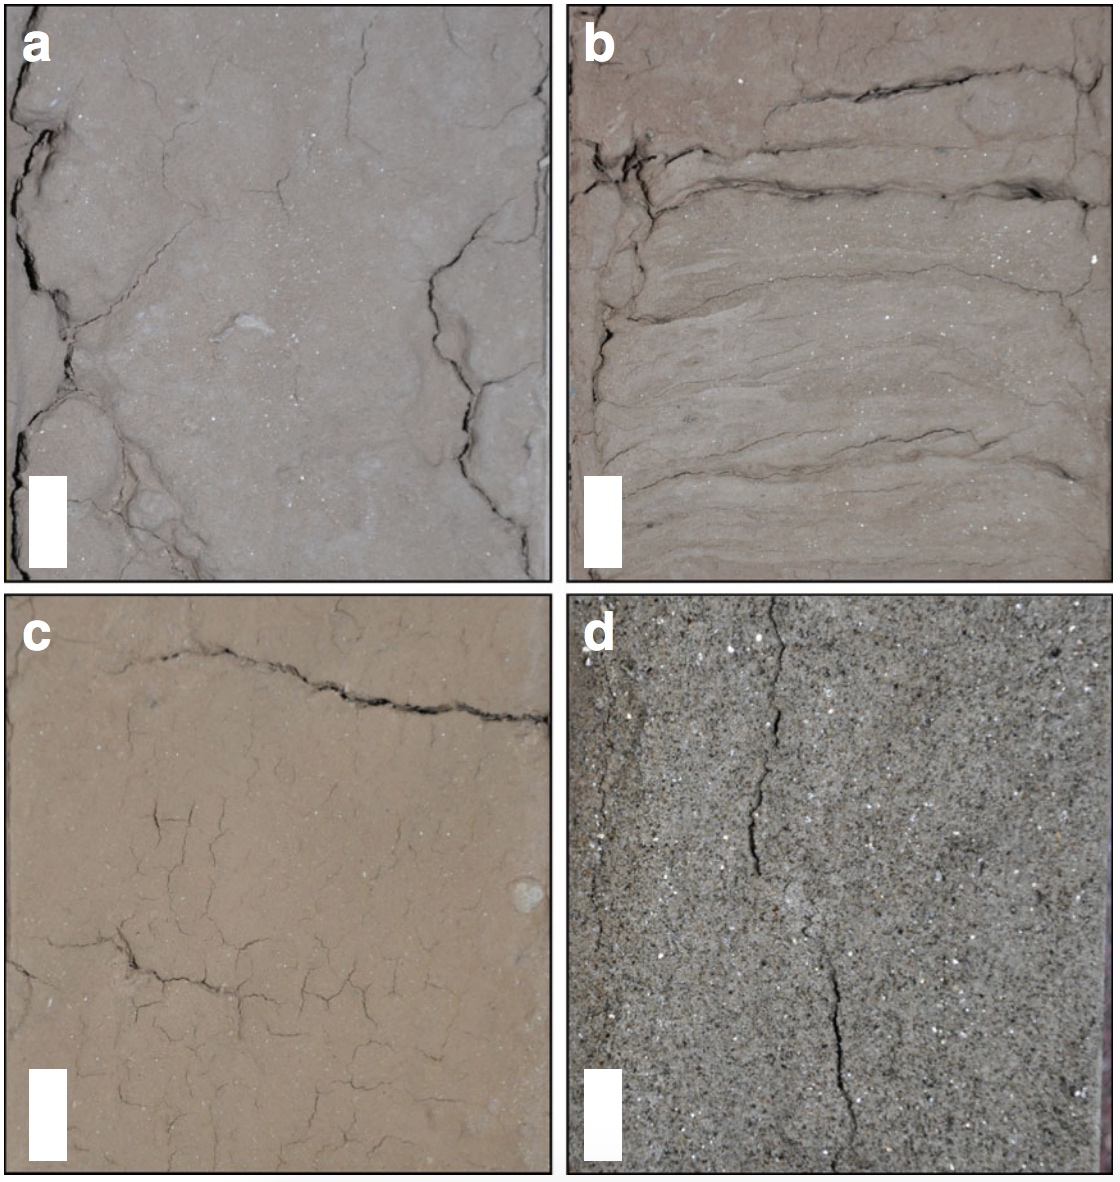 Detailed sedimentary features of core recovered from site GS10 at Kalibangan. Scale bar is 1 cm in all images. (a) Silty clay at 2 m depth;(b) interlaminated silt and very fine sand at 4 m depth;(c) red-brown clayey silt at 6.5 m depth; and(d) grey micaceous fine sand at 17 m depth. Caption and credit:DOI: 10.1038/s41467-017-01643-9